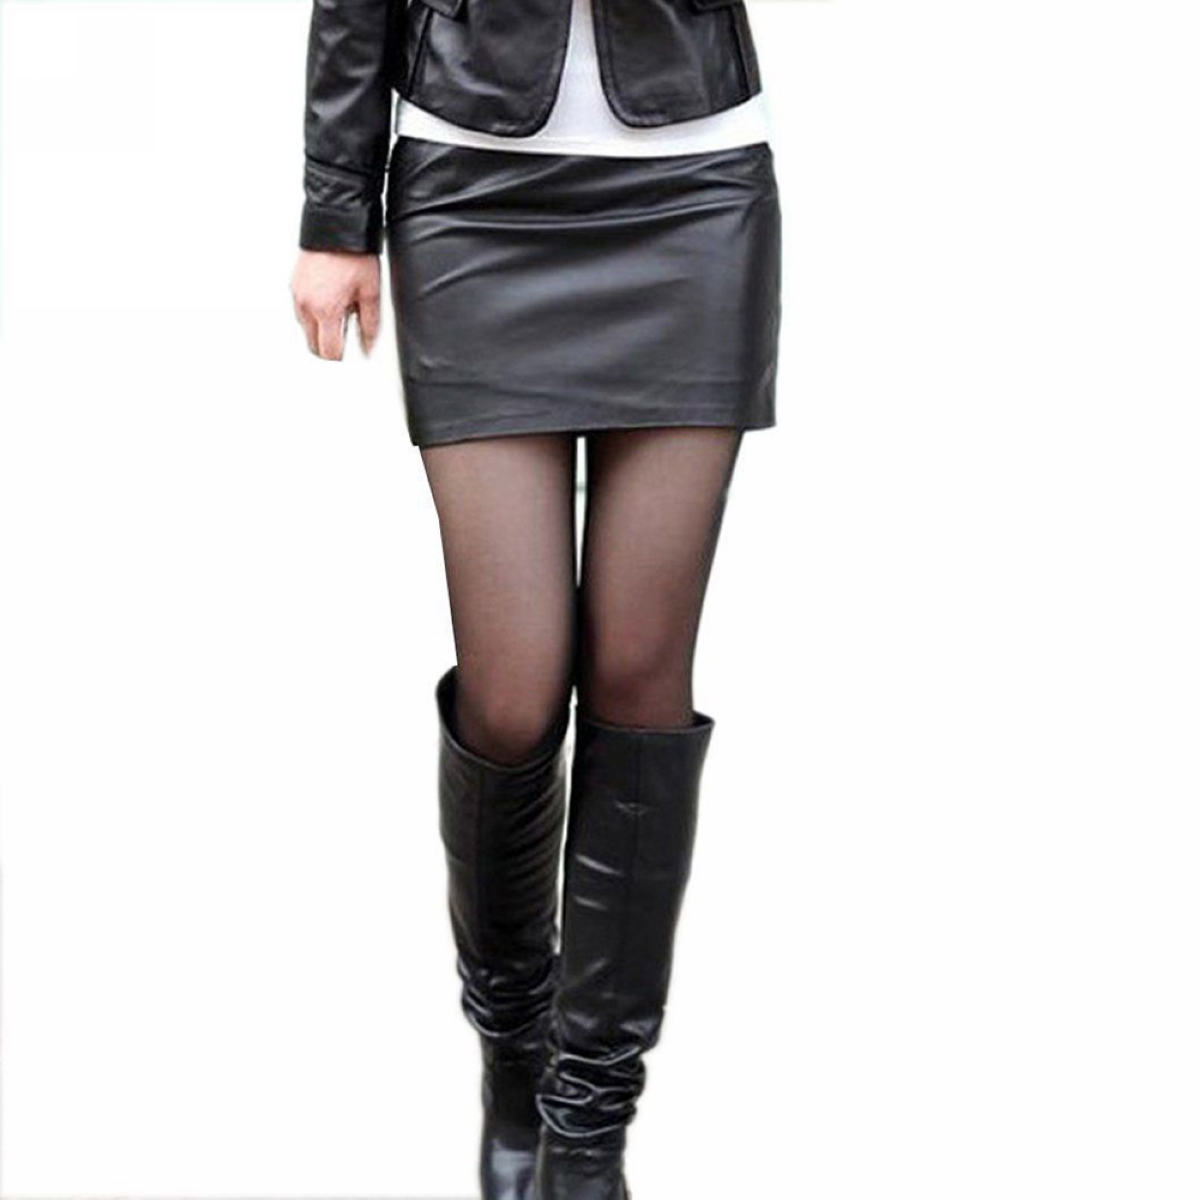 Skirts Womens Sexy Soft PU Leather High Waist Slim Pencil Bodycon Mini Skirt Lady Tight Stretch Korean OL Skirts Jupe Femme